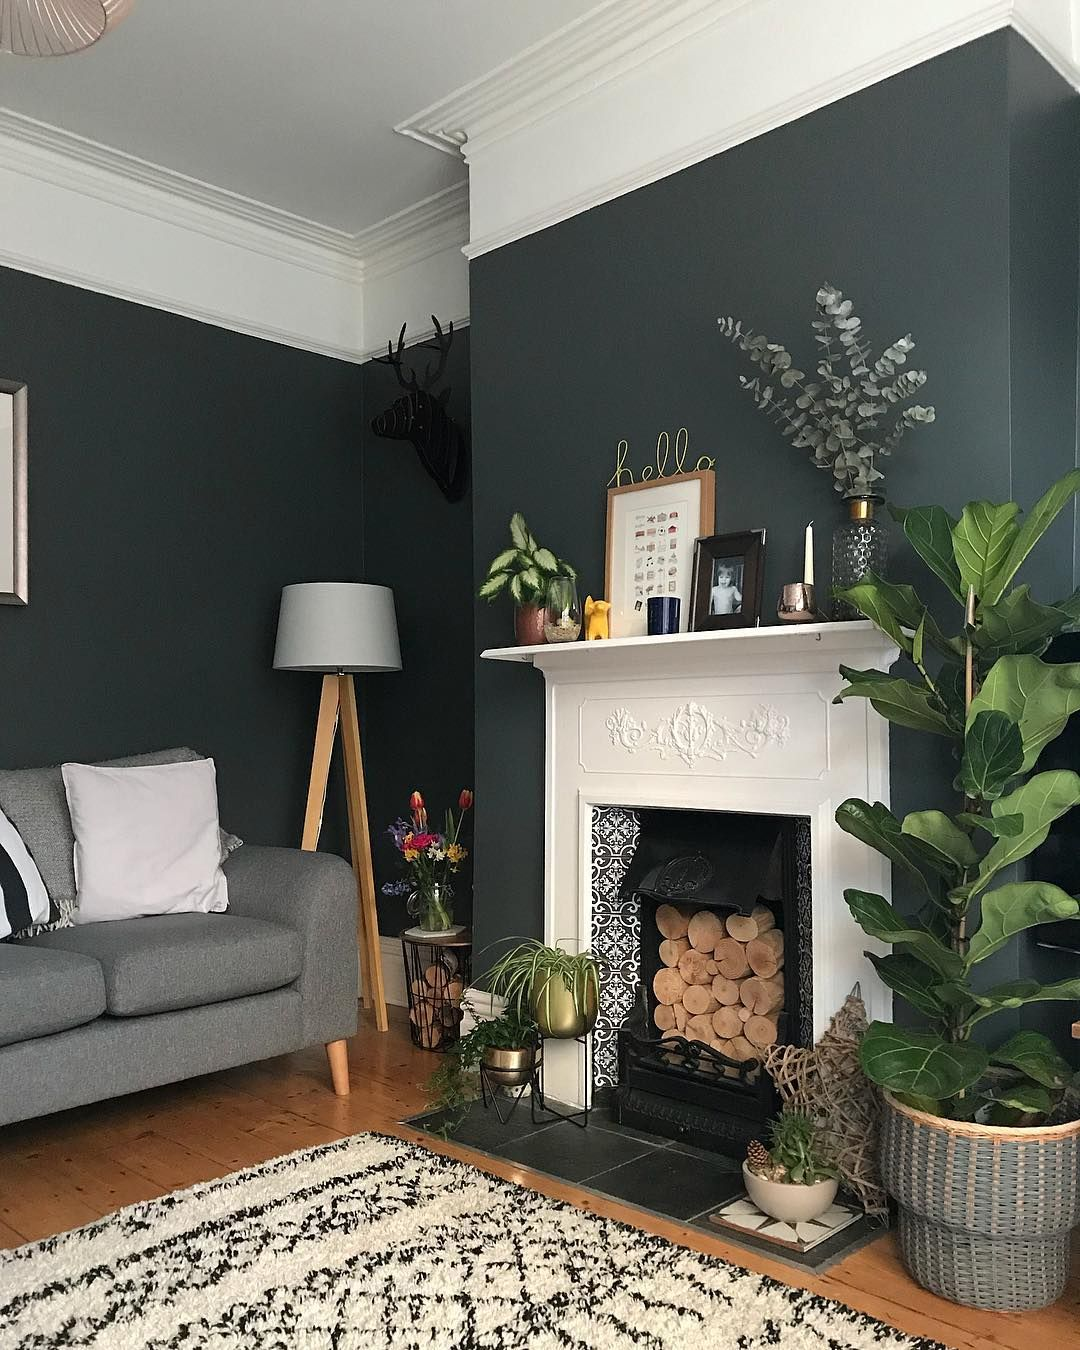 Wall Colour Inspiration: Pin Von Elissa Rezac Auf Interior Design In 2019